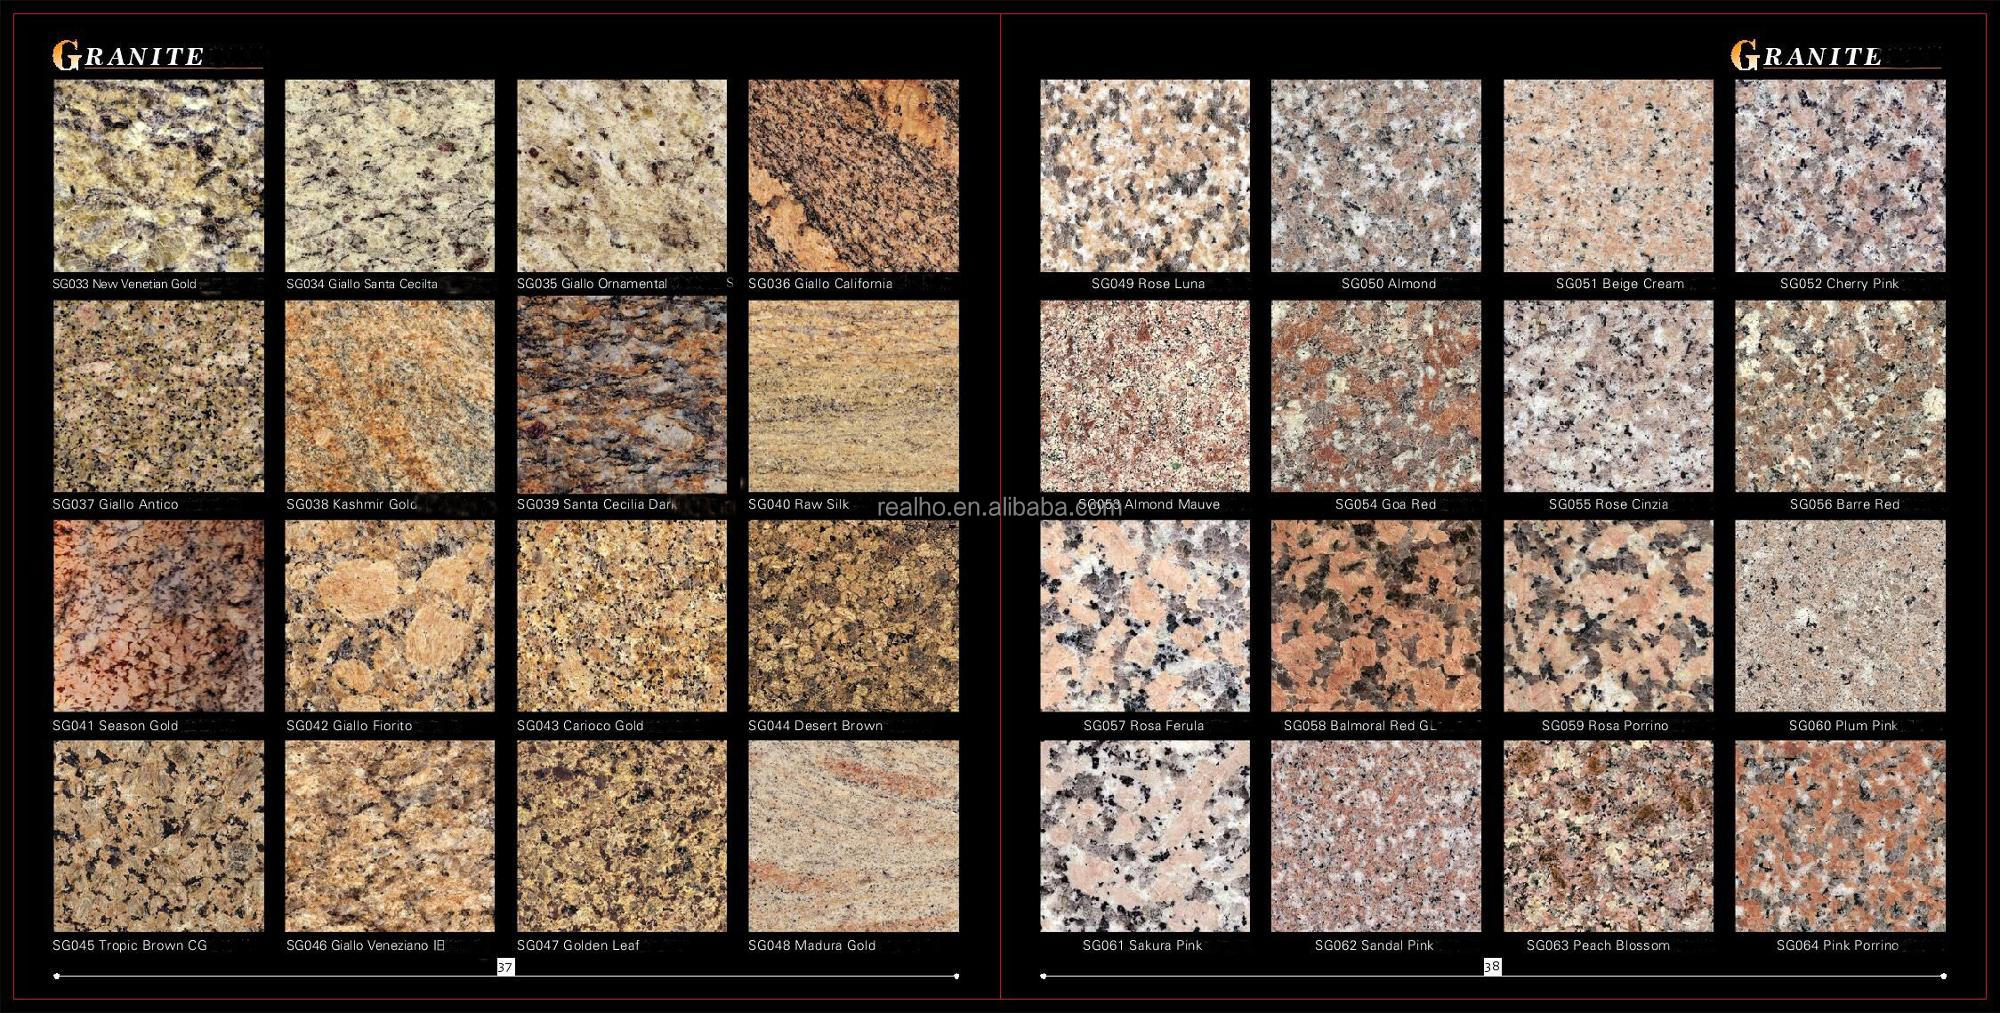 granite catalogue-02.jpg